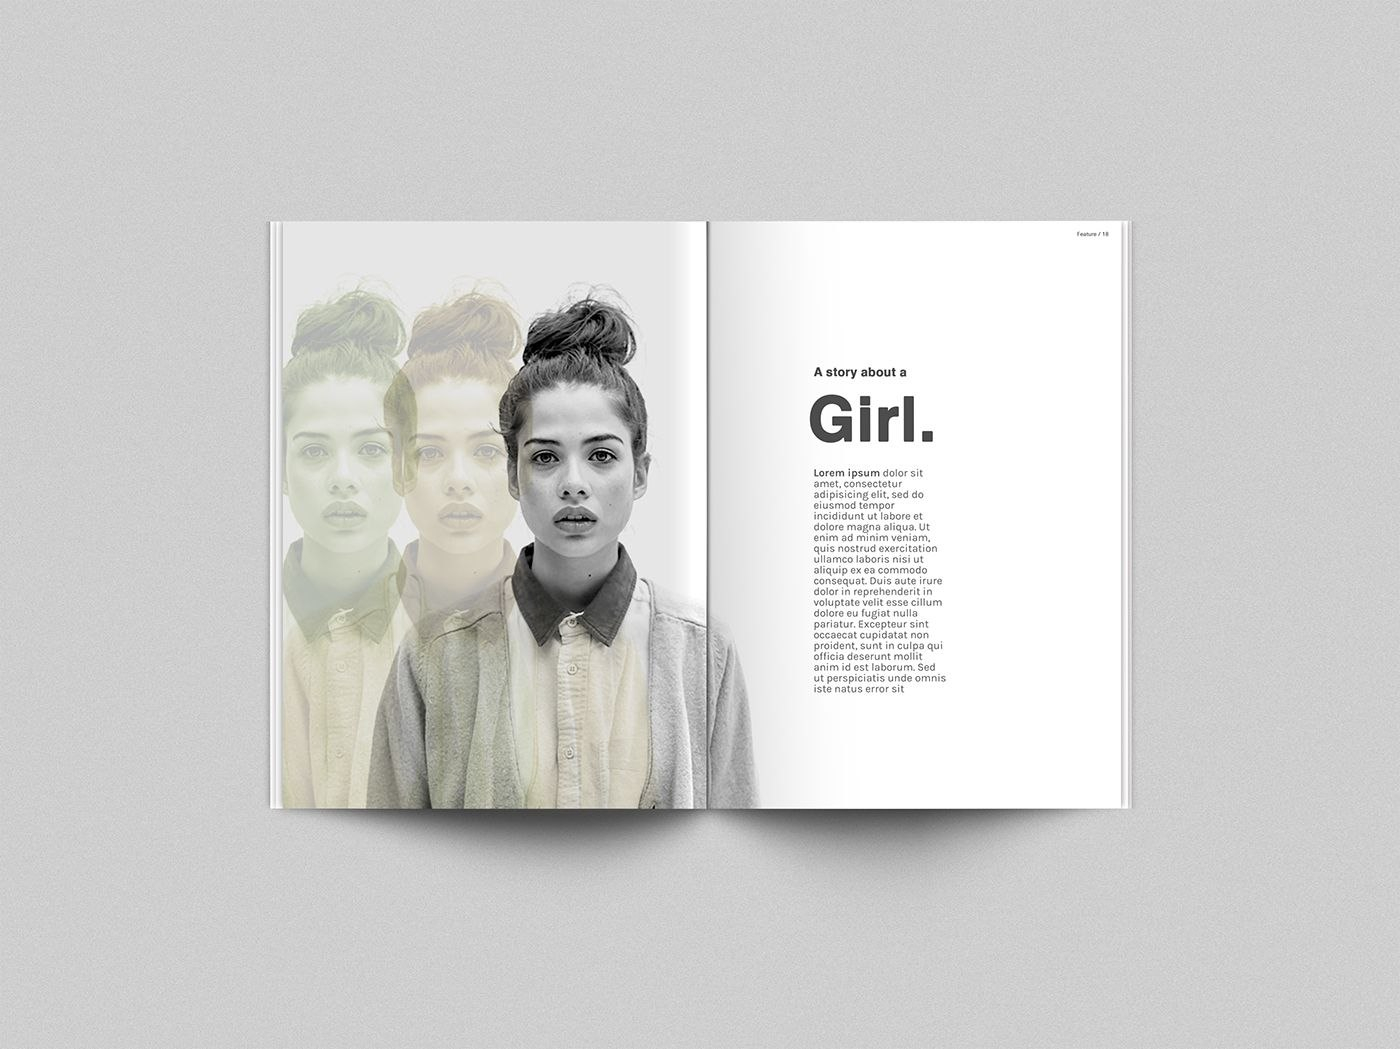 Free Psd Mock Up Template For Your Magazine Concepts This Is An Regarding Blank Magazine Template Psd